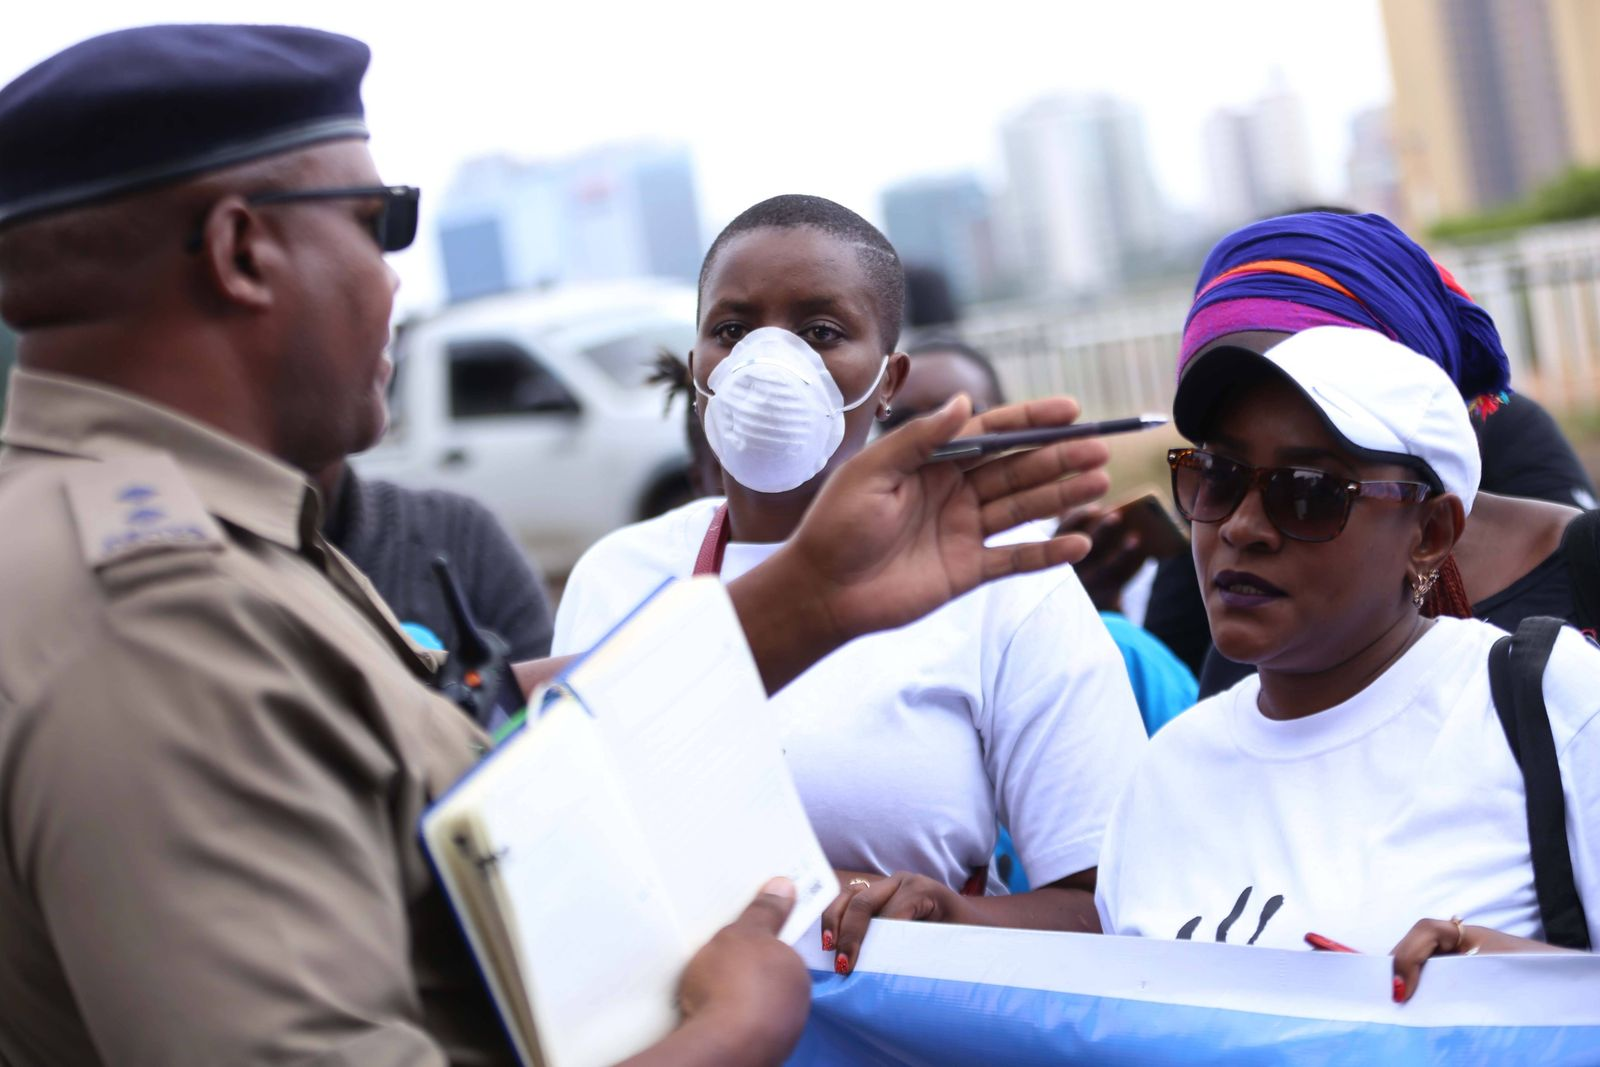 March 4, 2020, Nairobi, Kenya: Police confront members of civil society who staged protest in Nairobi city demanding the